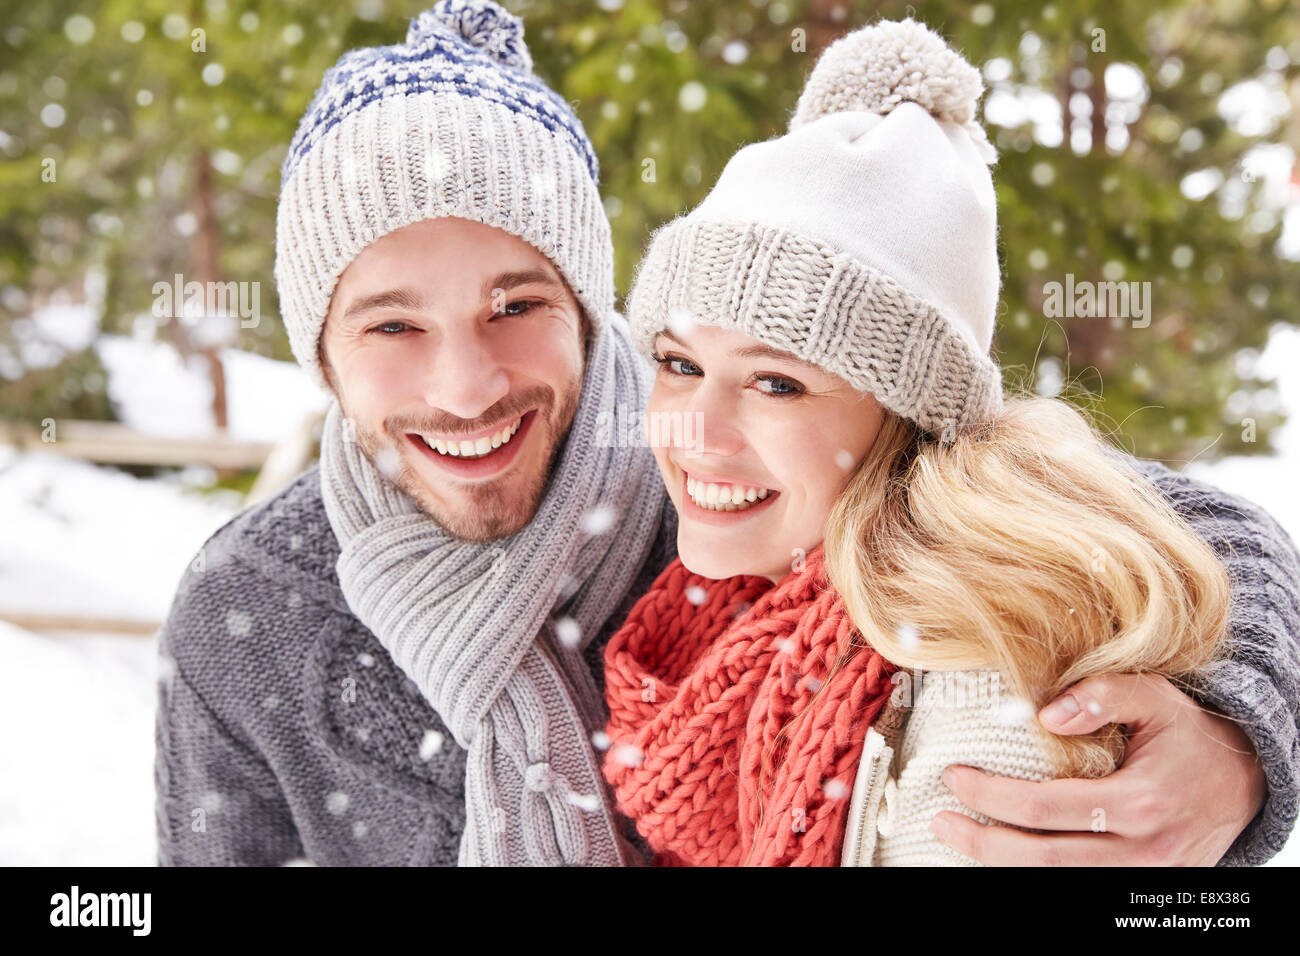 Couple hugging in the snow - Stock Image